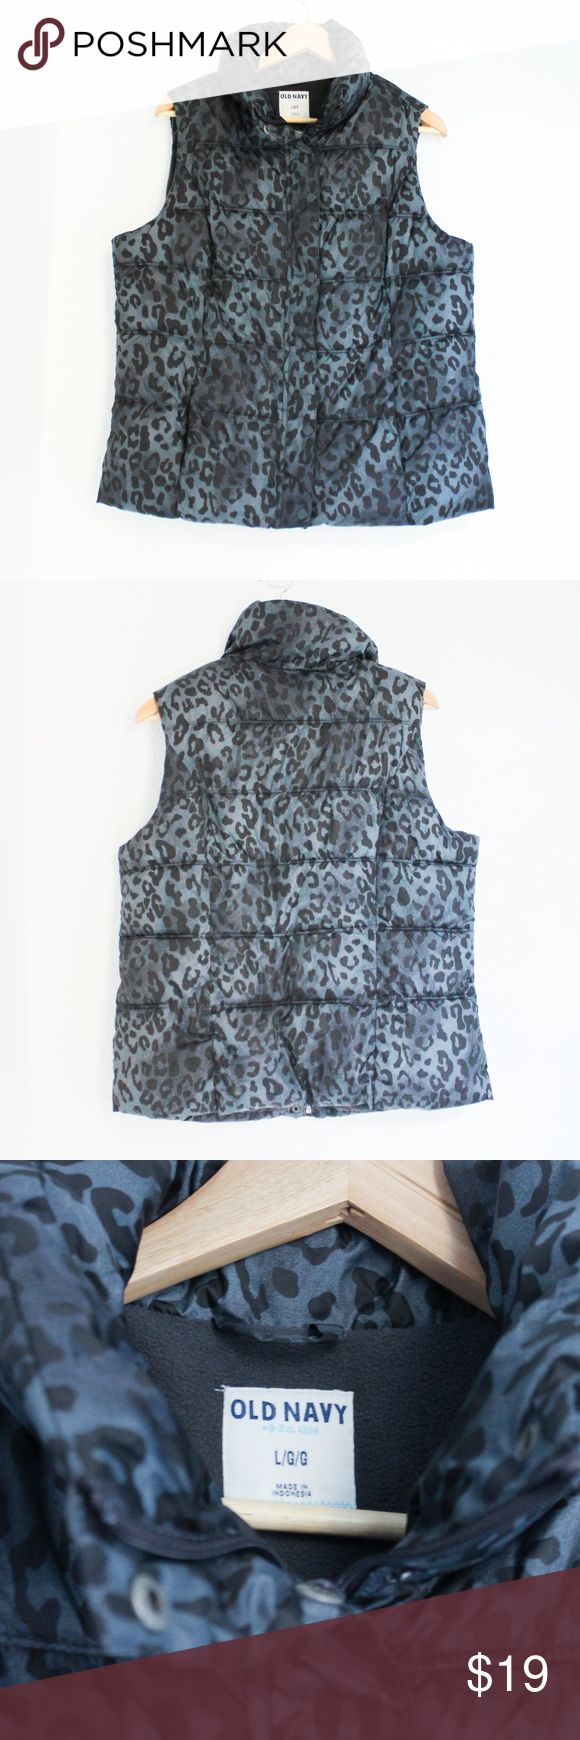 """OLD NAVY Leopard Print Fleece Puffer Vest Sz L OLD NAVY Women's Gray Black Zip Button Leopard Print Puffer Vest Sz L  This vest has a nice animal print on the shell. It zips all the way up as well as buttons/snaps. Fleece lined and has 2 pockets.   Approximate measurements: Length from shoulder to hem 24"""", Armpit to armpit 21"""" Old Navy Jackets & Coats Vests"""